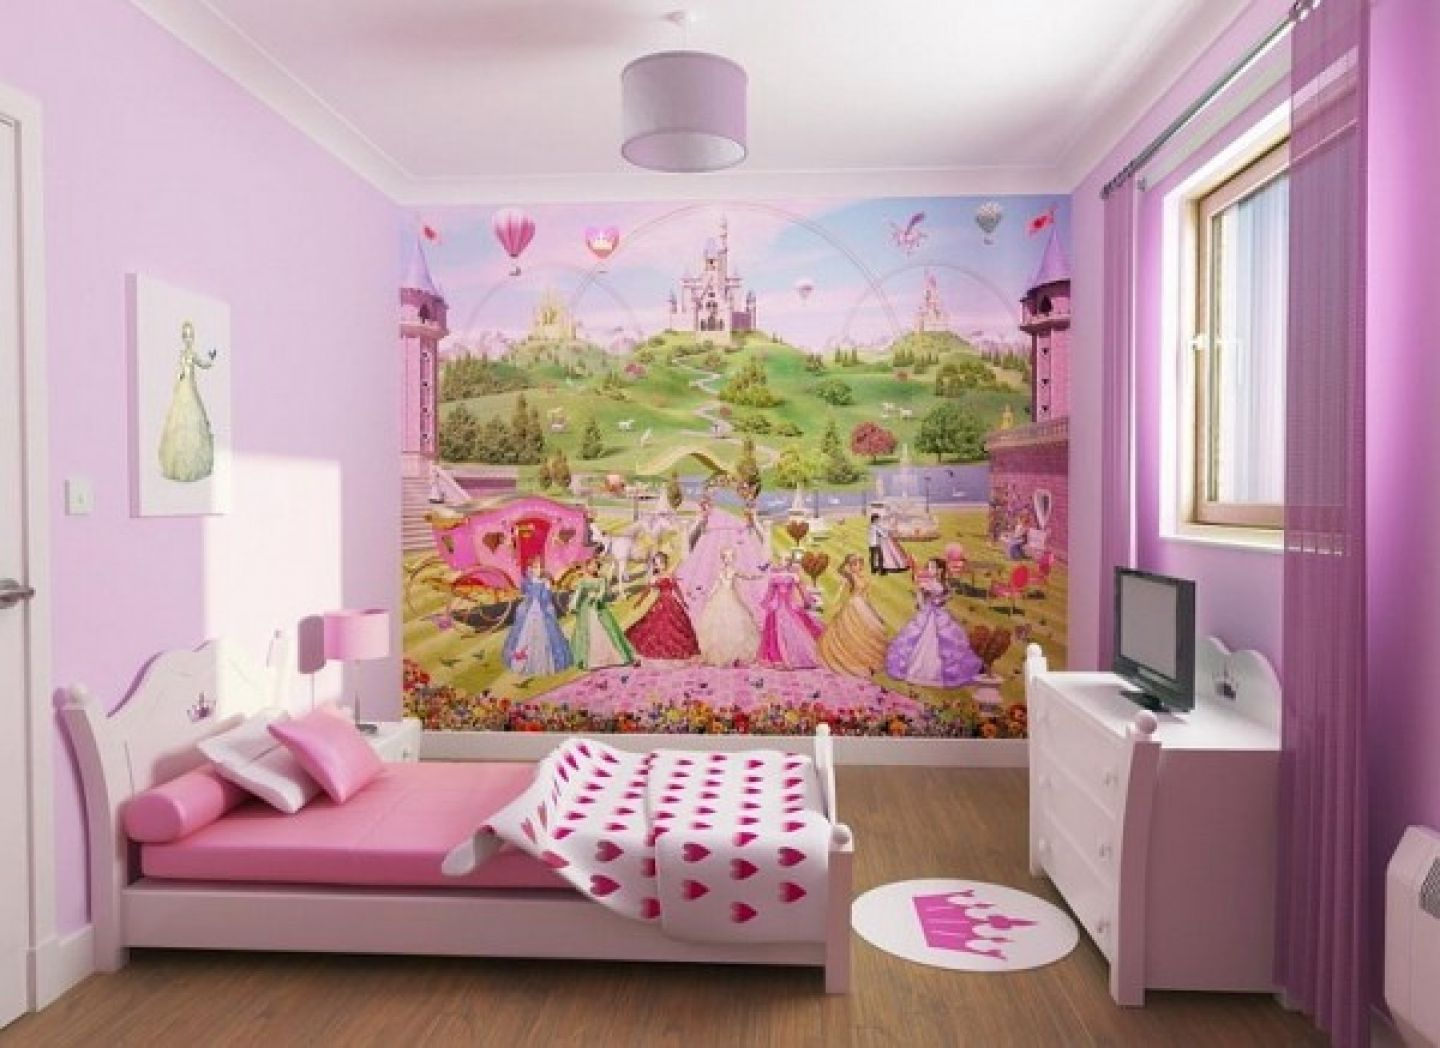 Bedroom Decor For Girls girls' bedroom style | bedrooms, small bedroom decorating and room